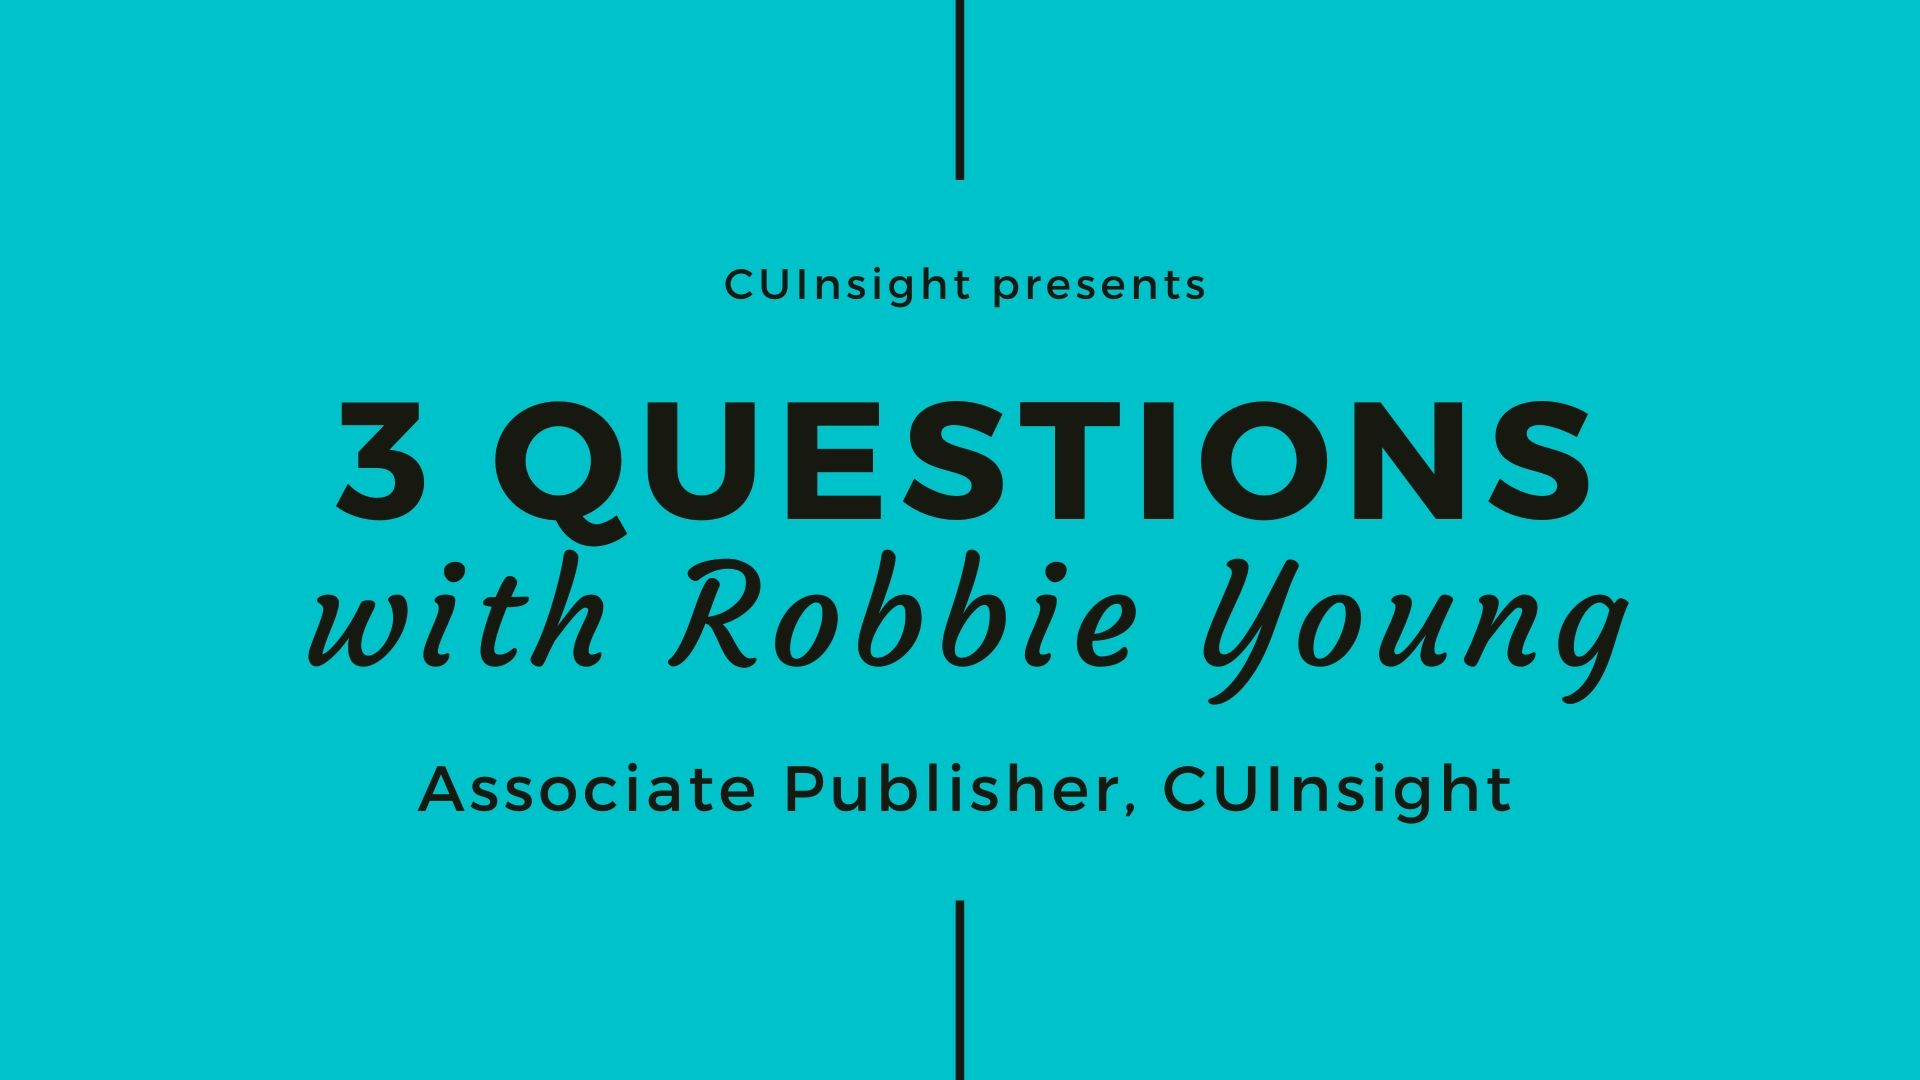 3 questions with CUInsight's Robbie Young